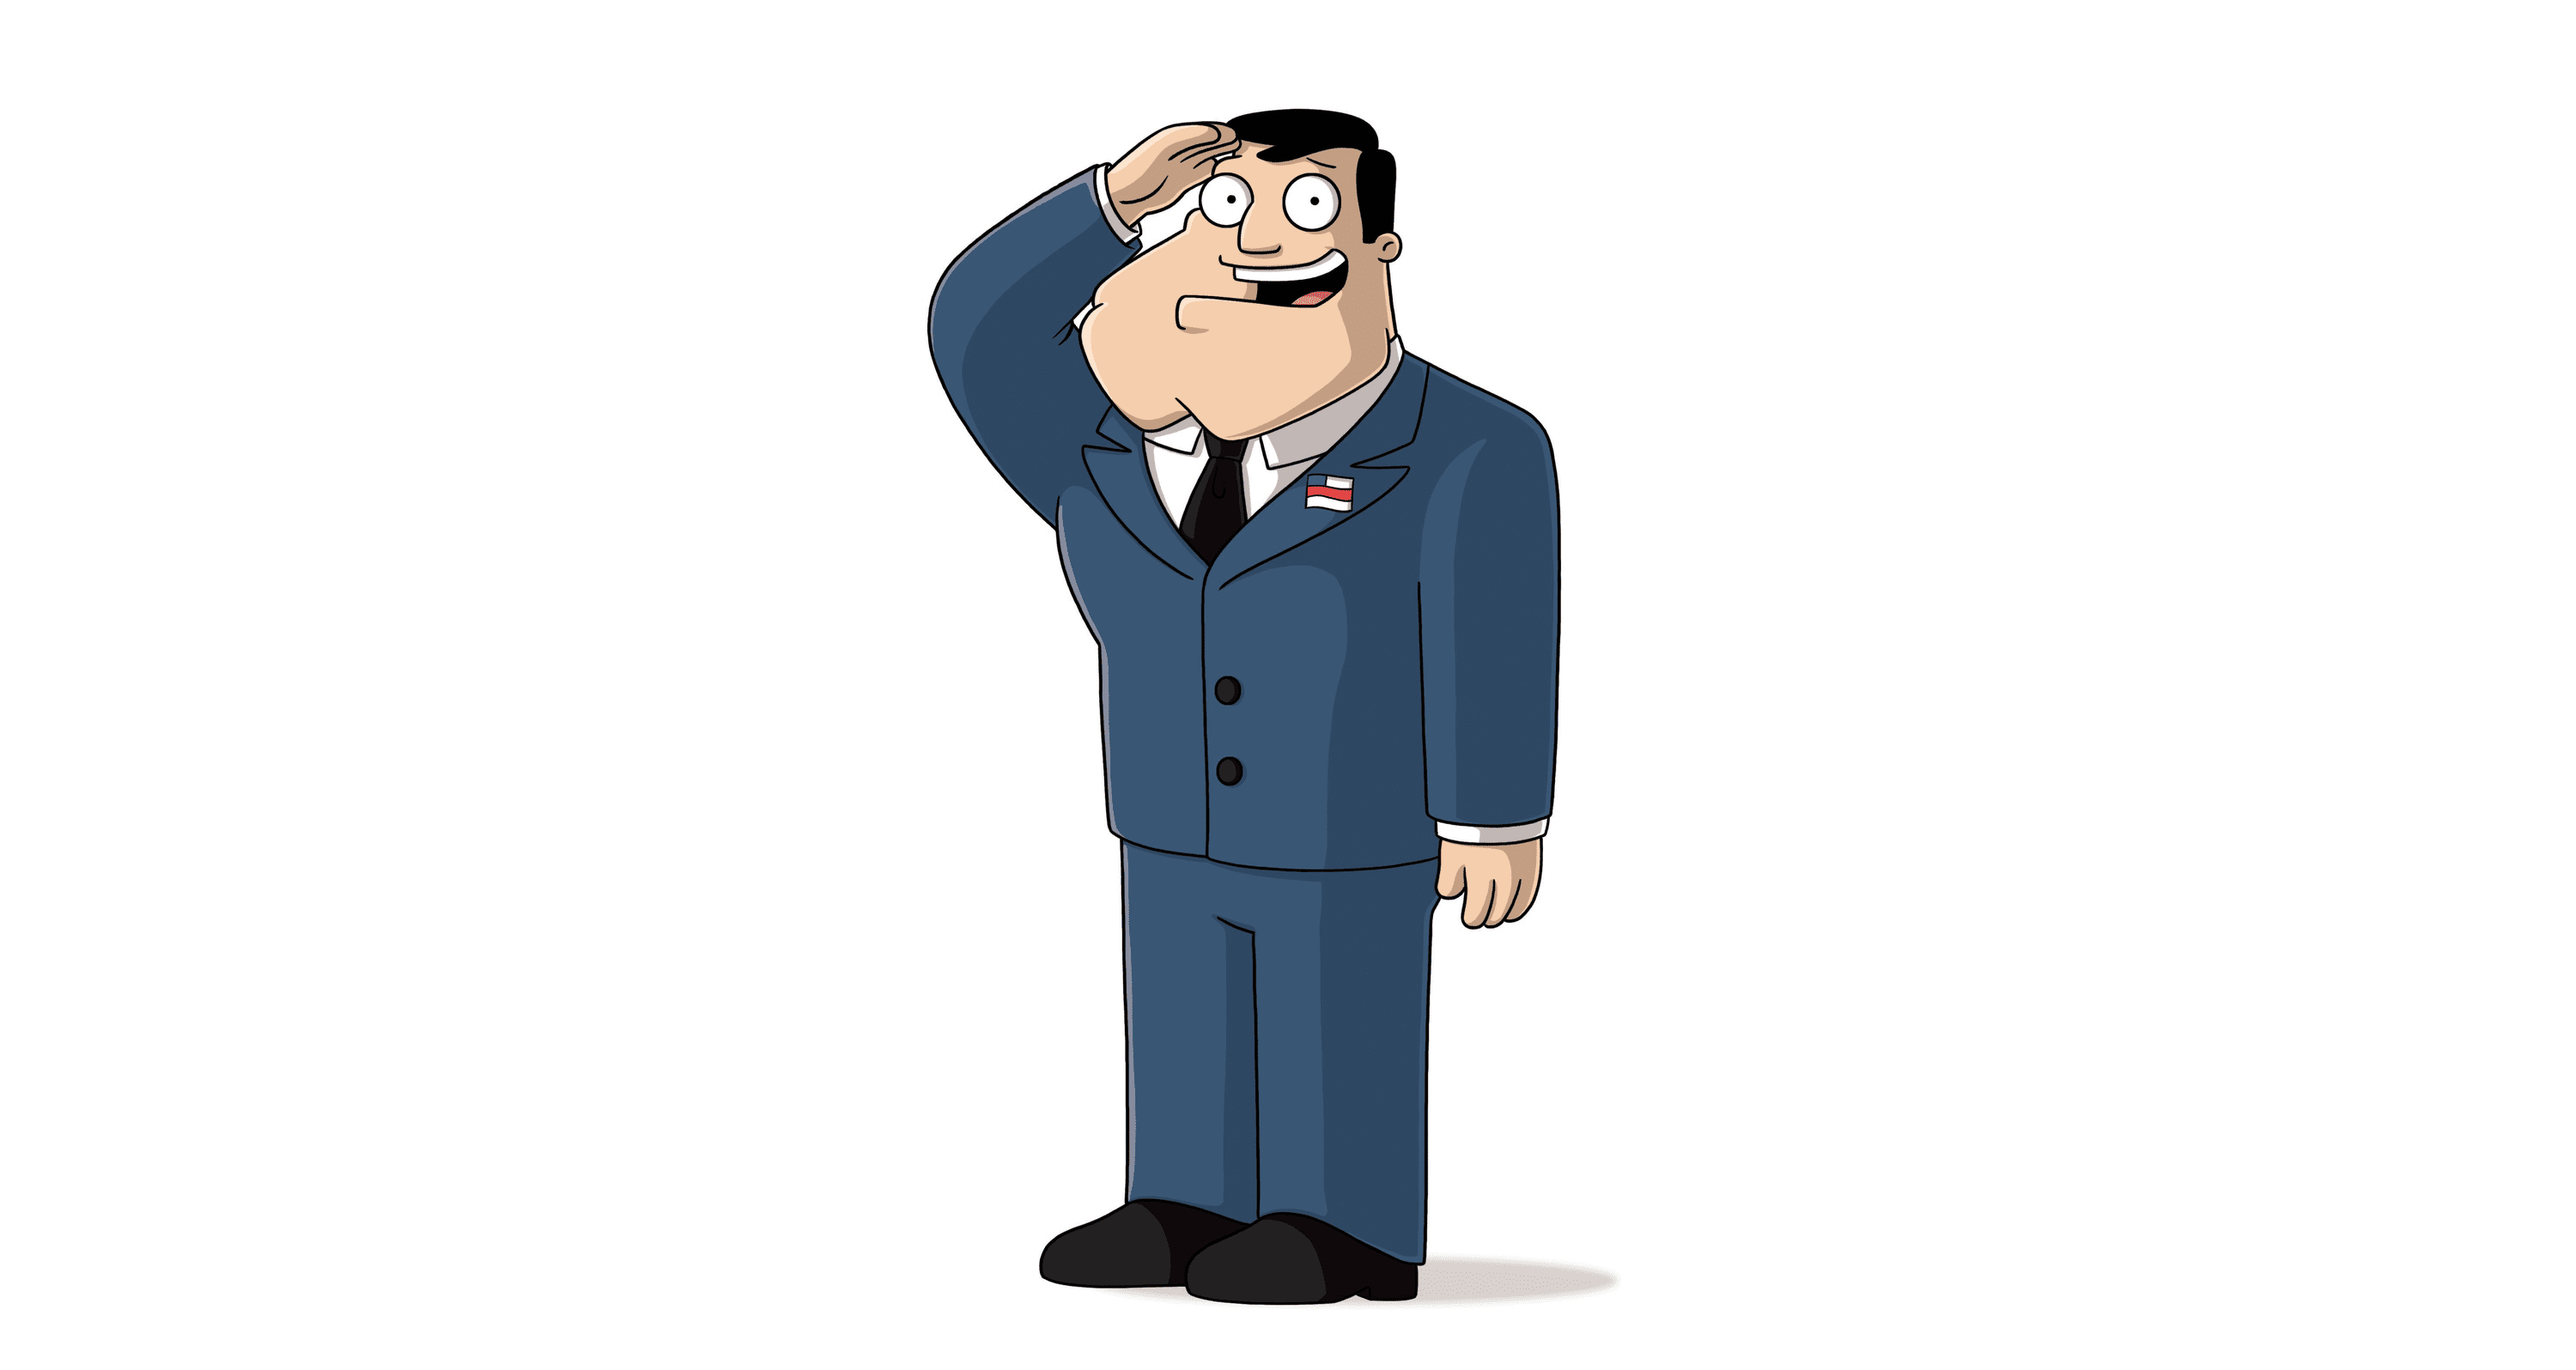 Stan Smith on 'American Dad'